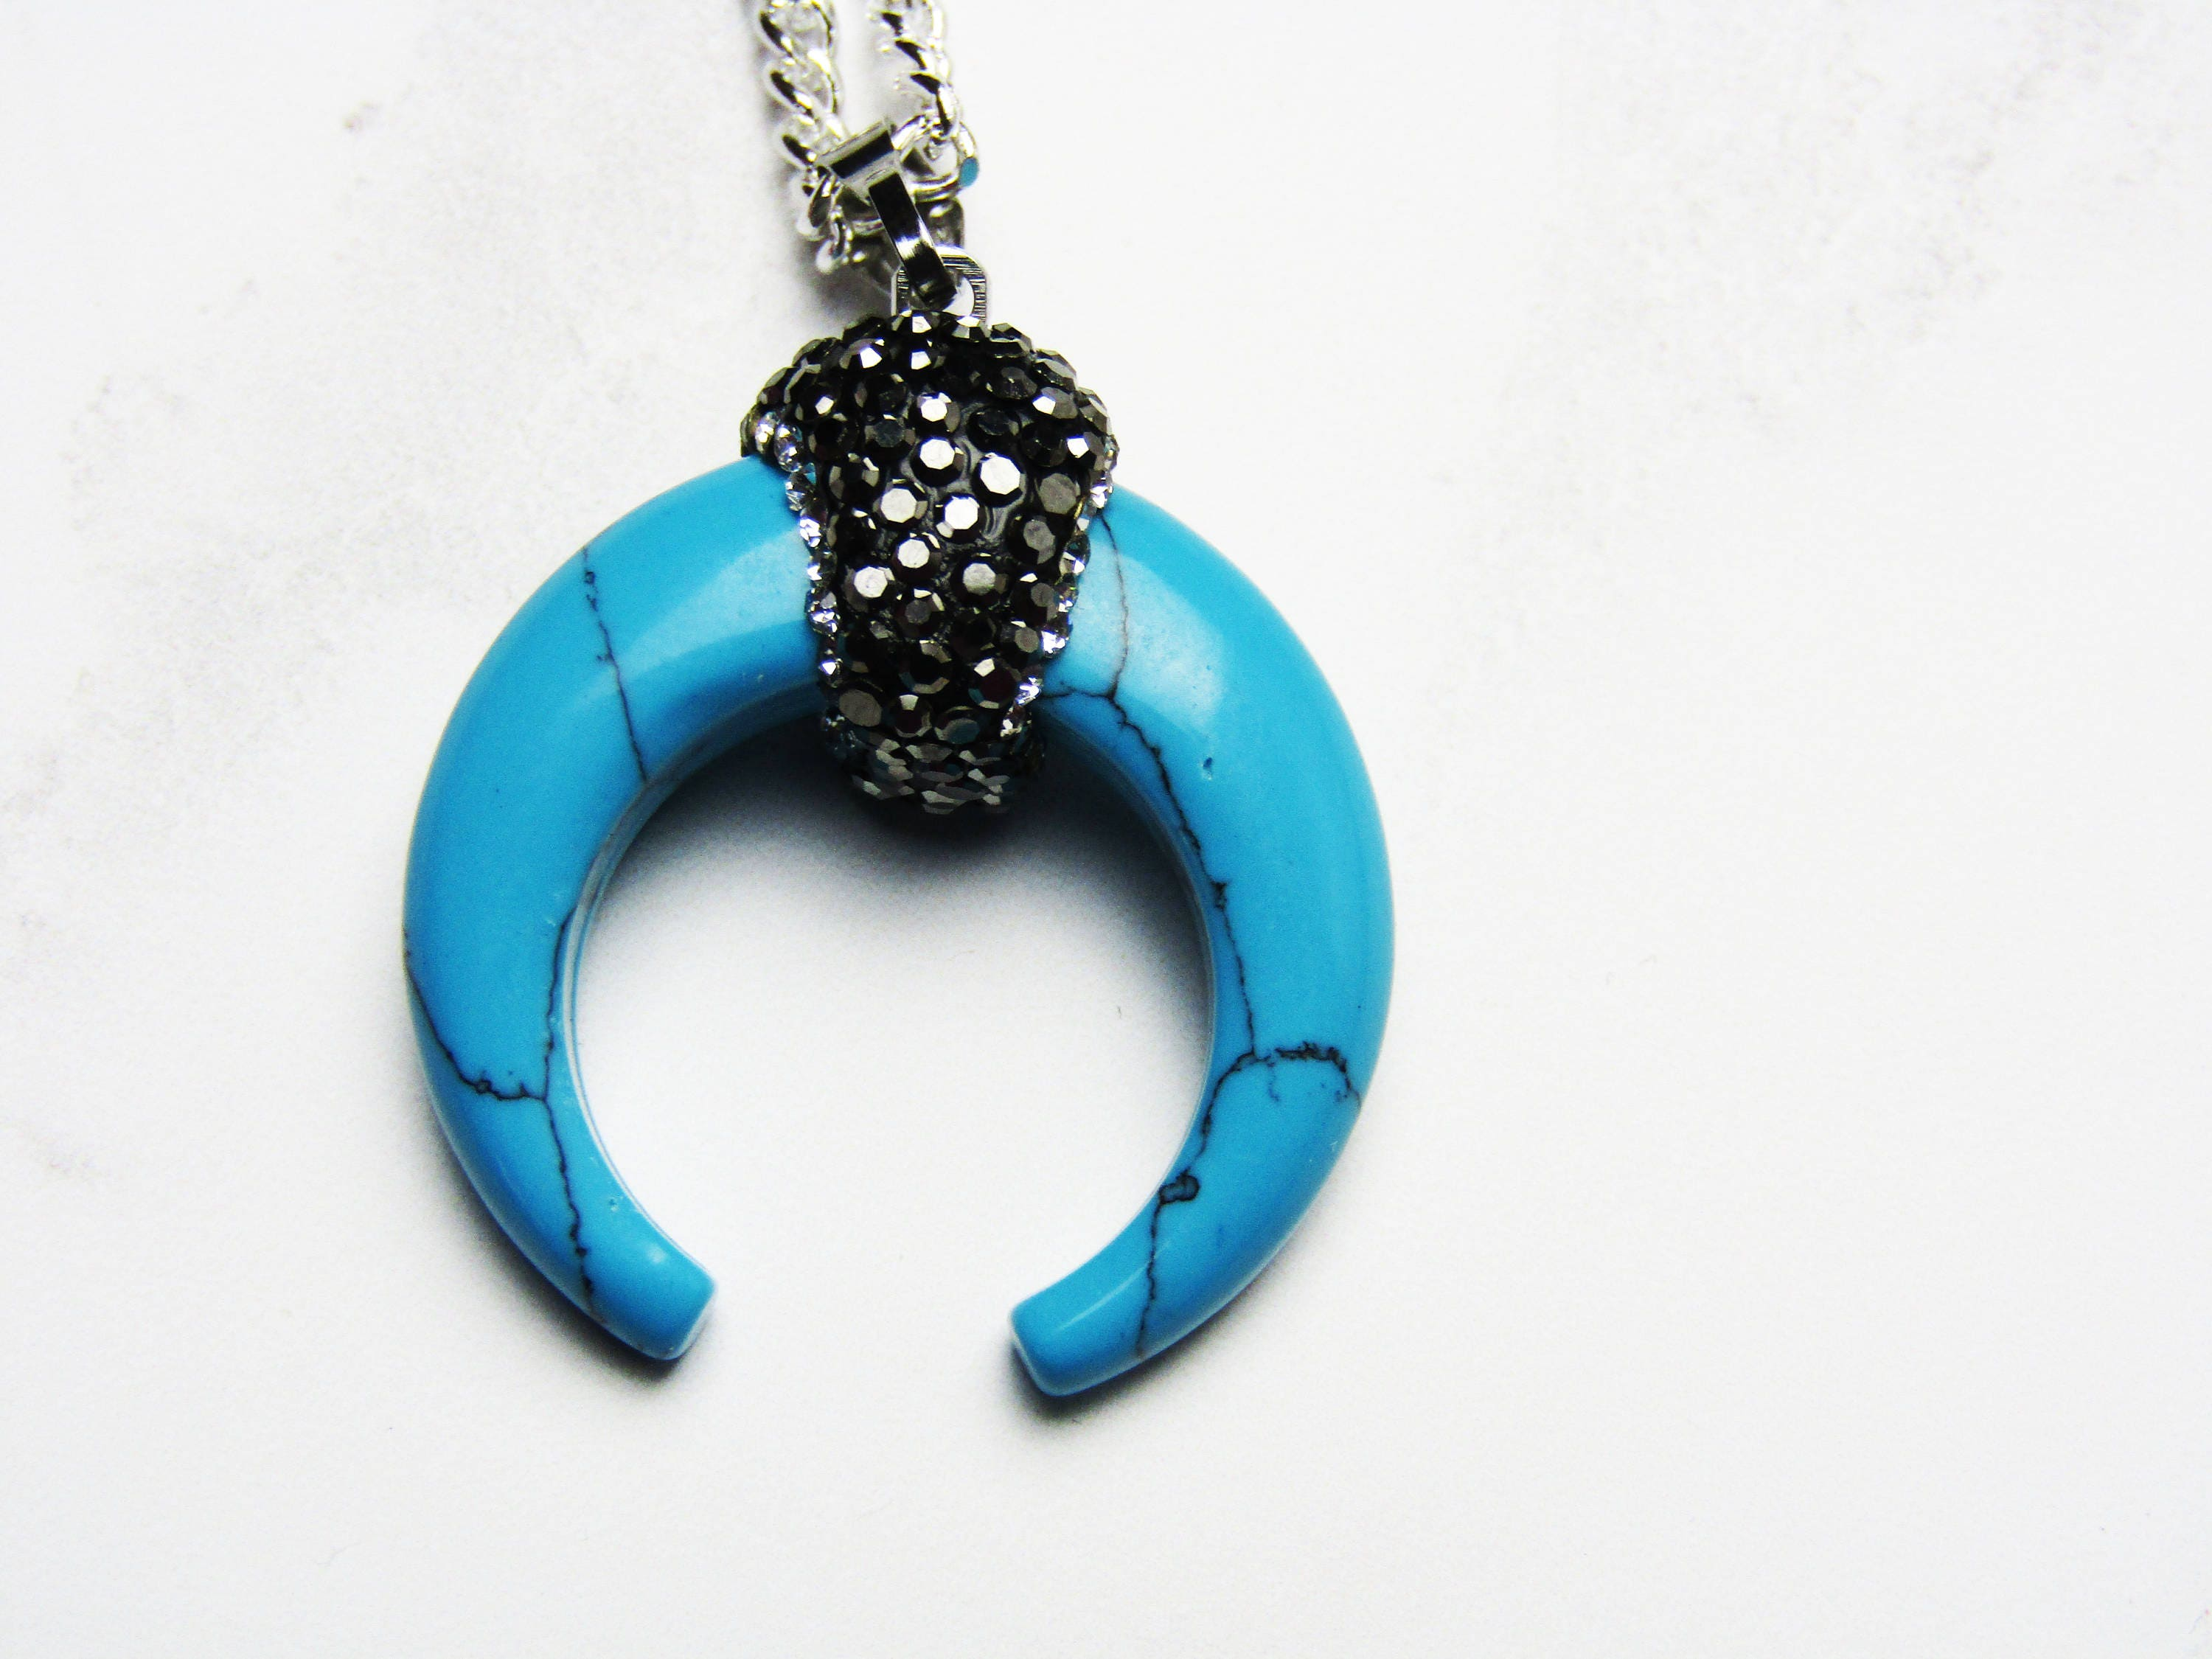 Turquoise Necklace Horn Shaped Pendant Horn Necklace Turquoise Necklace Turquoise Gemstone Blue Necklace Silver Necklace